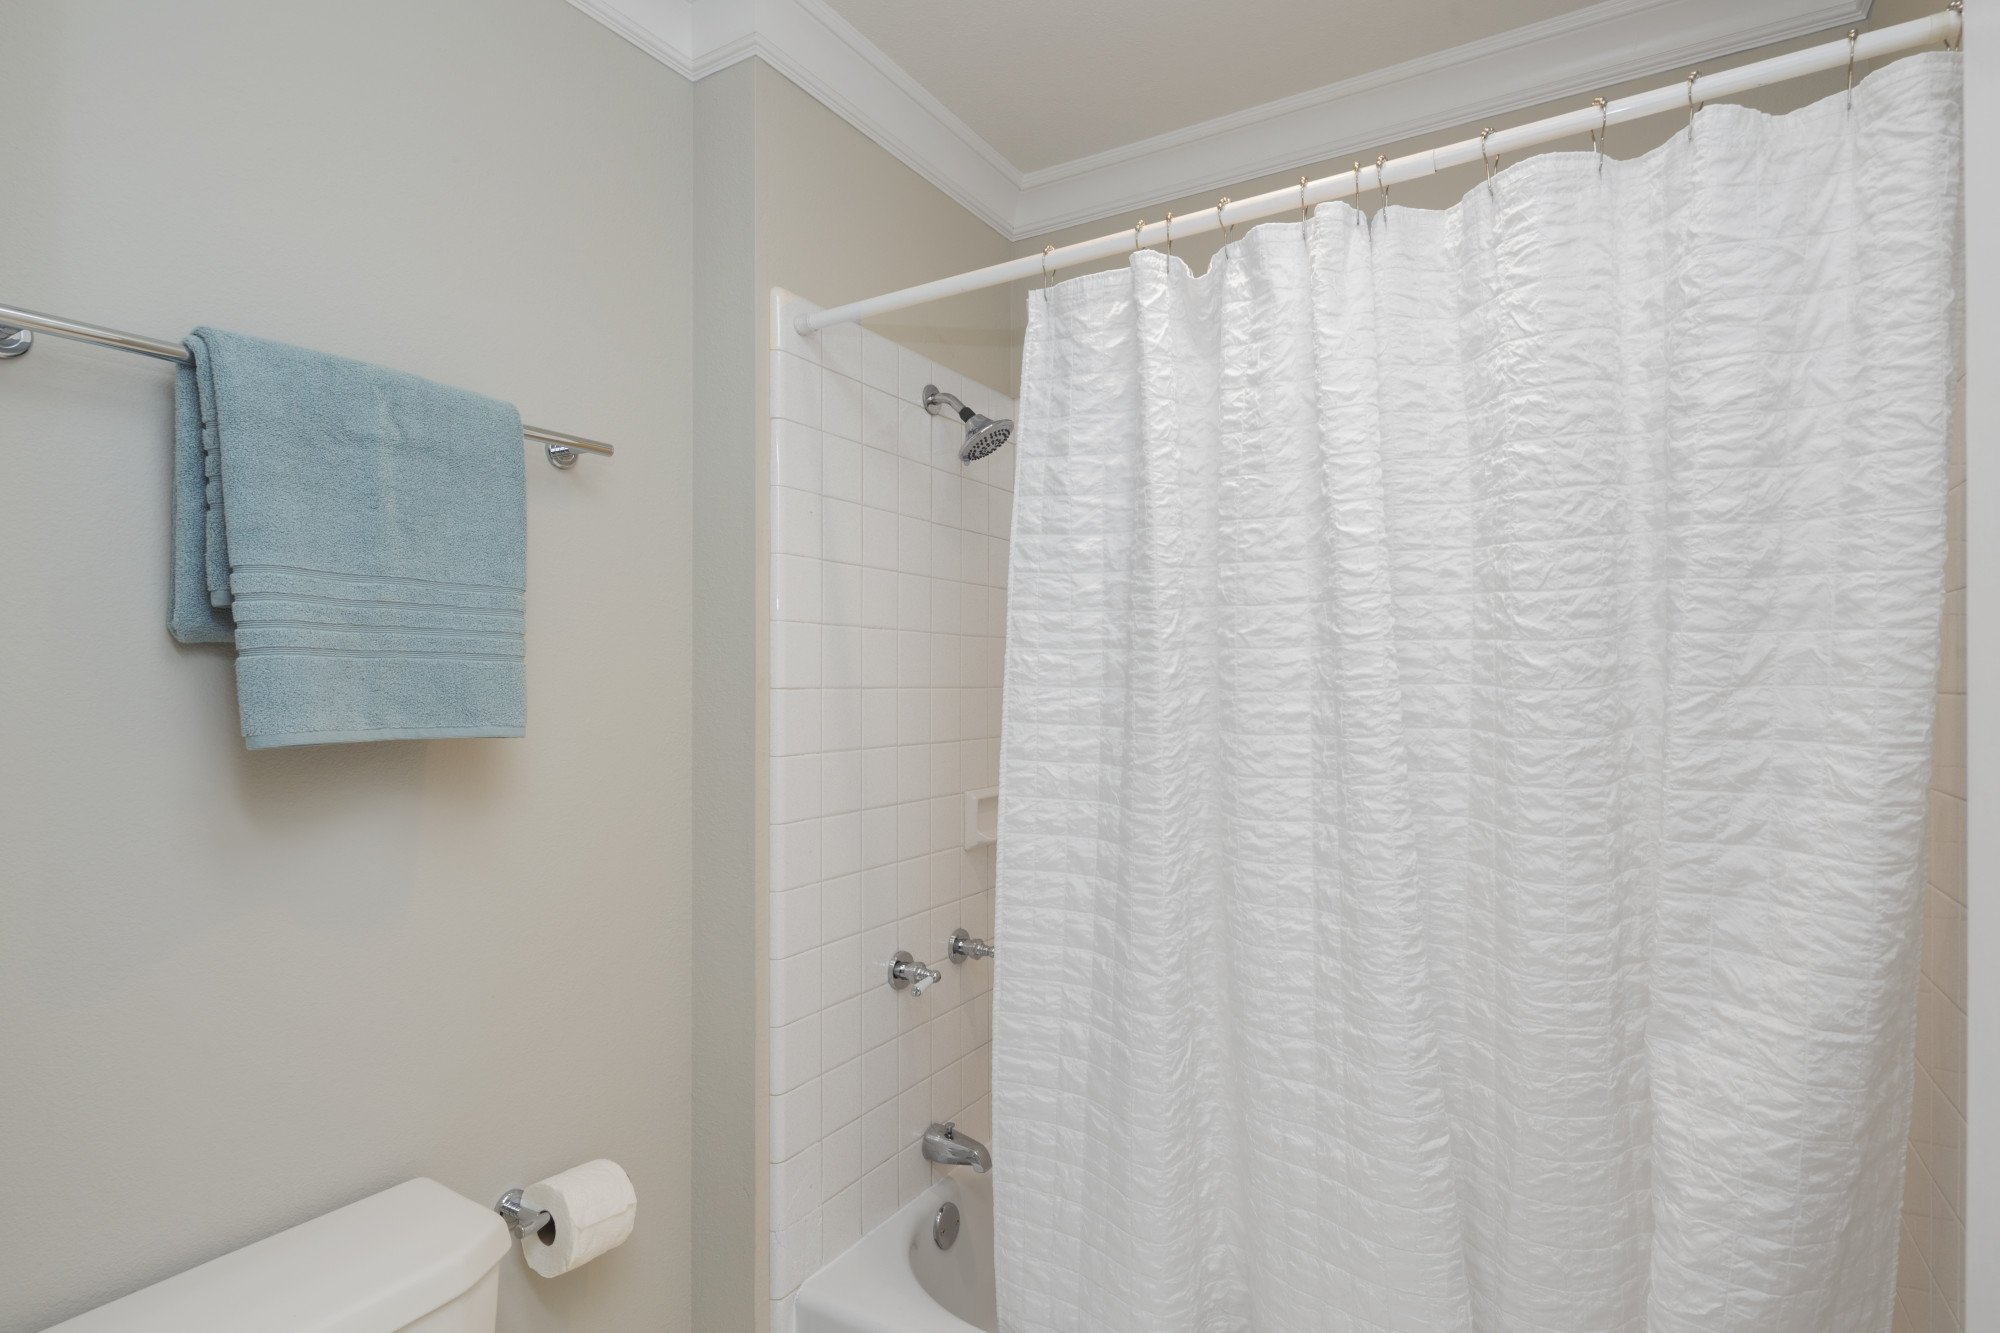 How To Choose The Best Shower Curtain For Your Bathroom